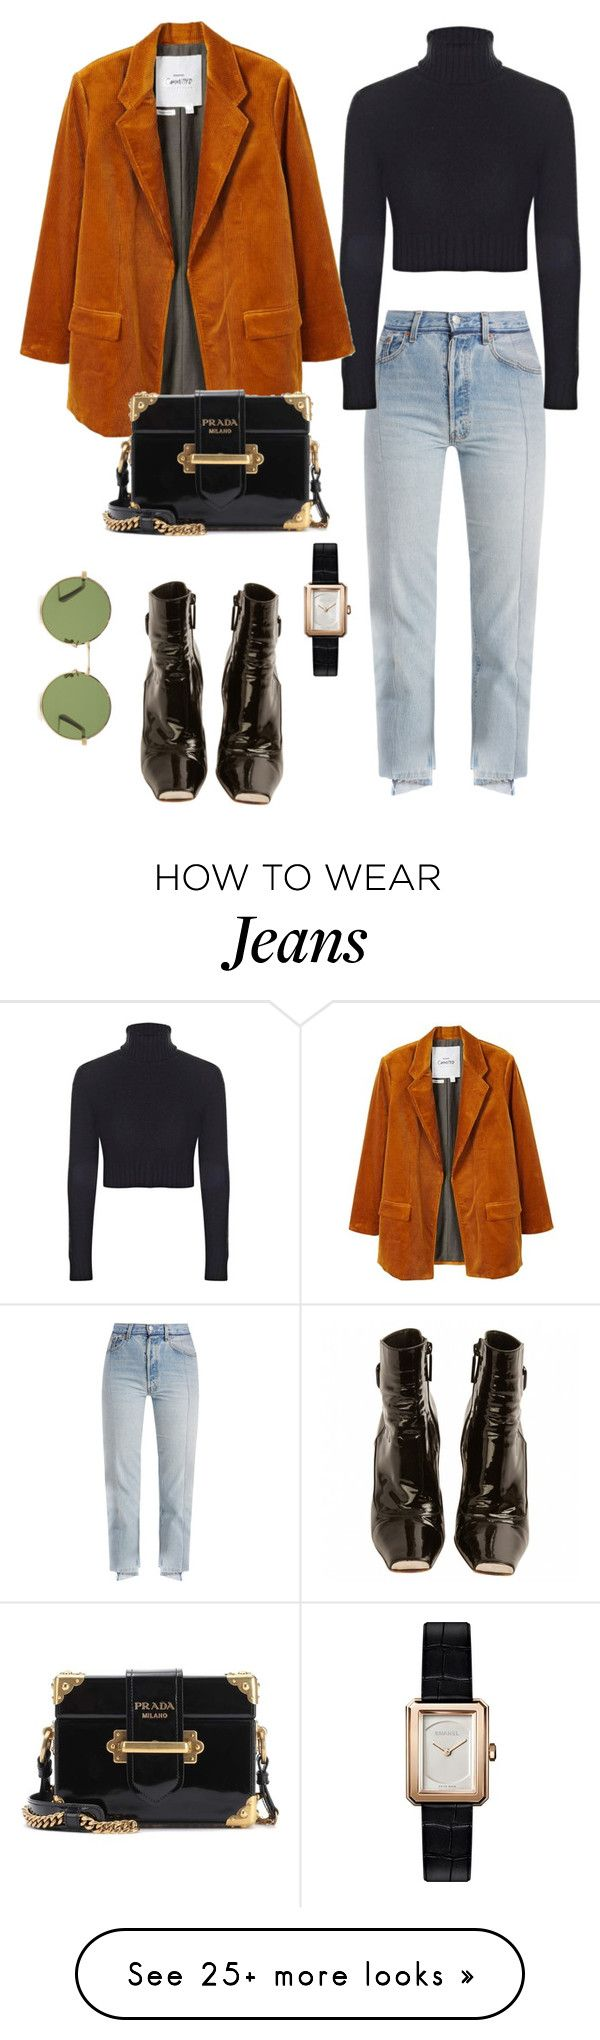 """Untitled #172"" by carolina11297 on Polyvore featuring Vetements, Boohoo, MANGO, Prada, Louis Vuitton, Chanel and Yves Saint Laurent"